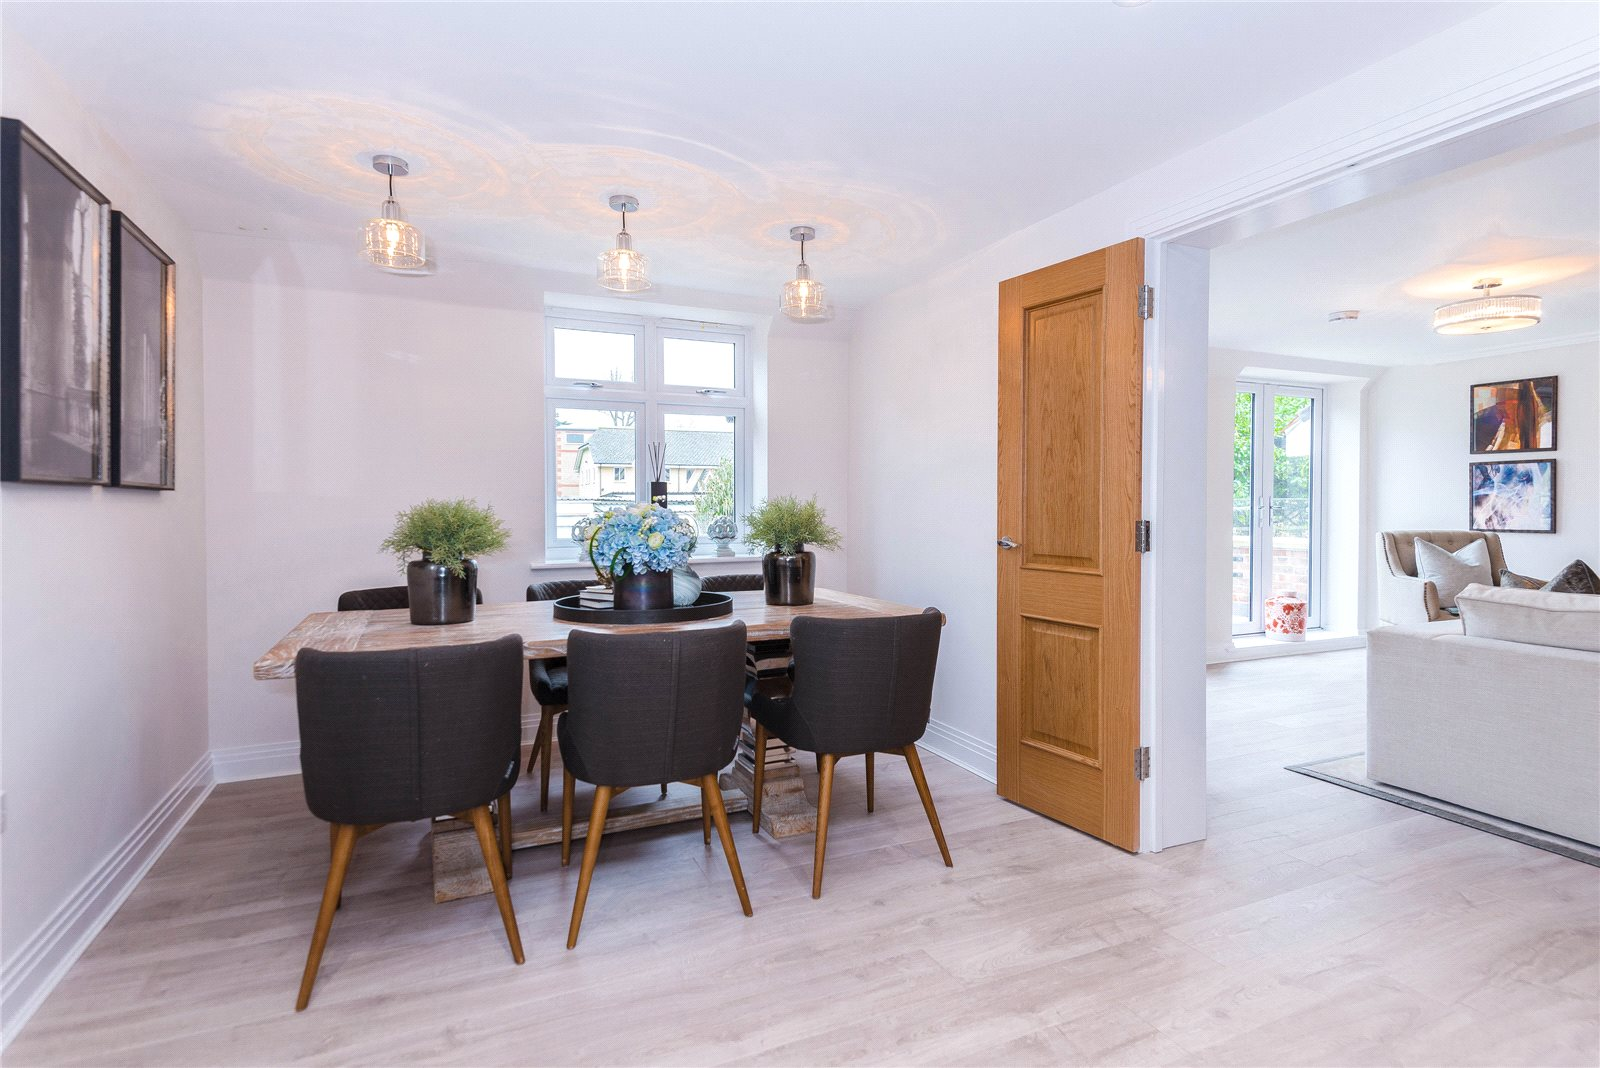 Additional photo for property listing at Scholars Place, South Park Drive, Gerrards Cross, Buckinghamshire, SL9 Gerrards Cross, Ingiltere